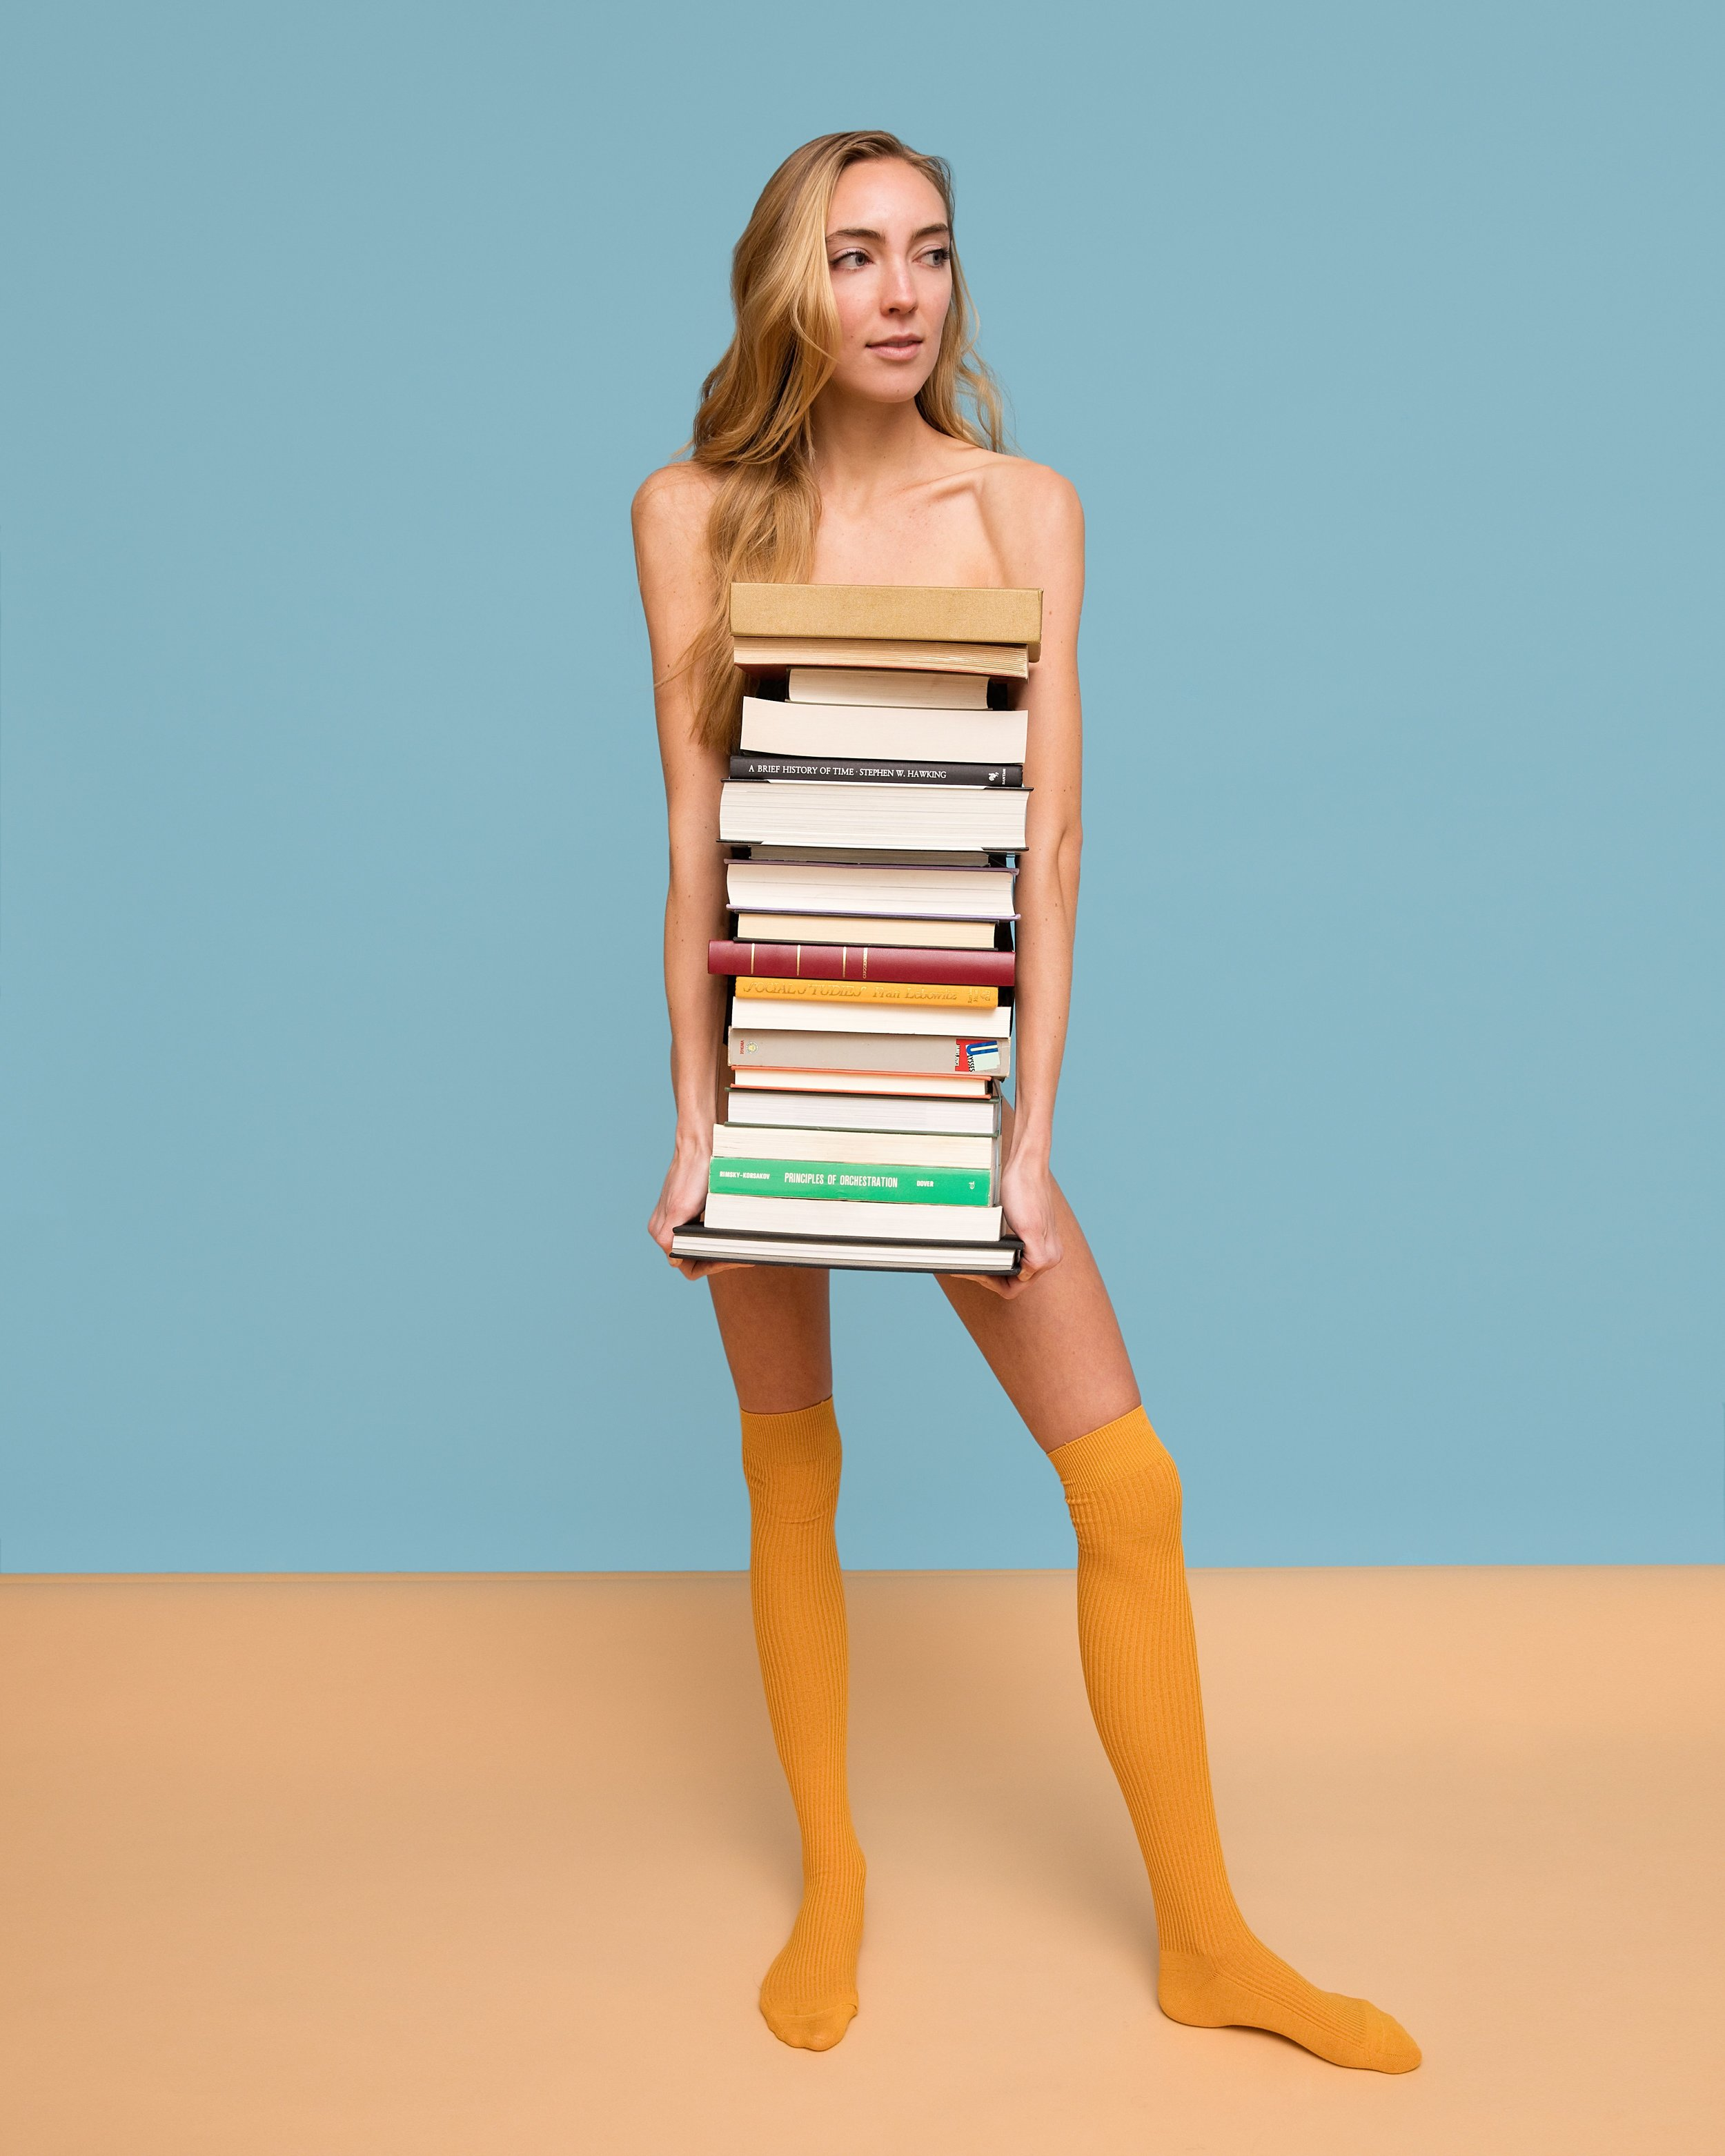 How To Appear BookSmart.jpg